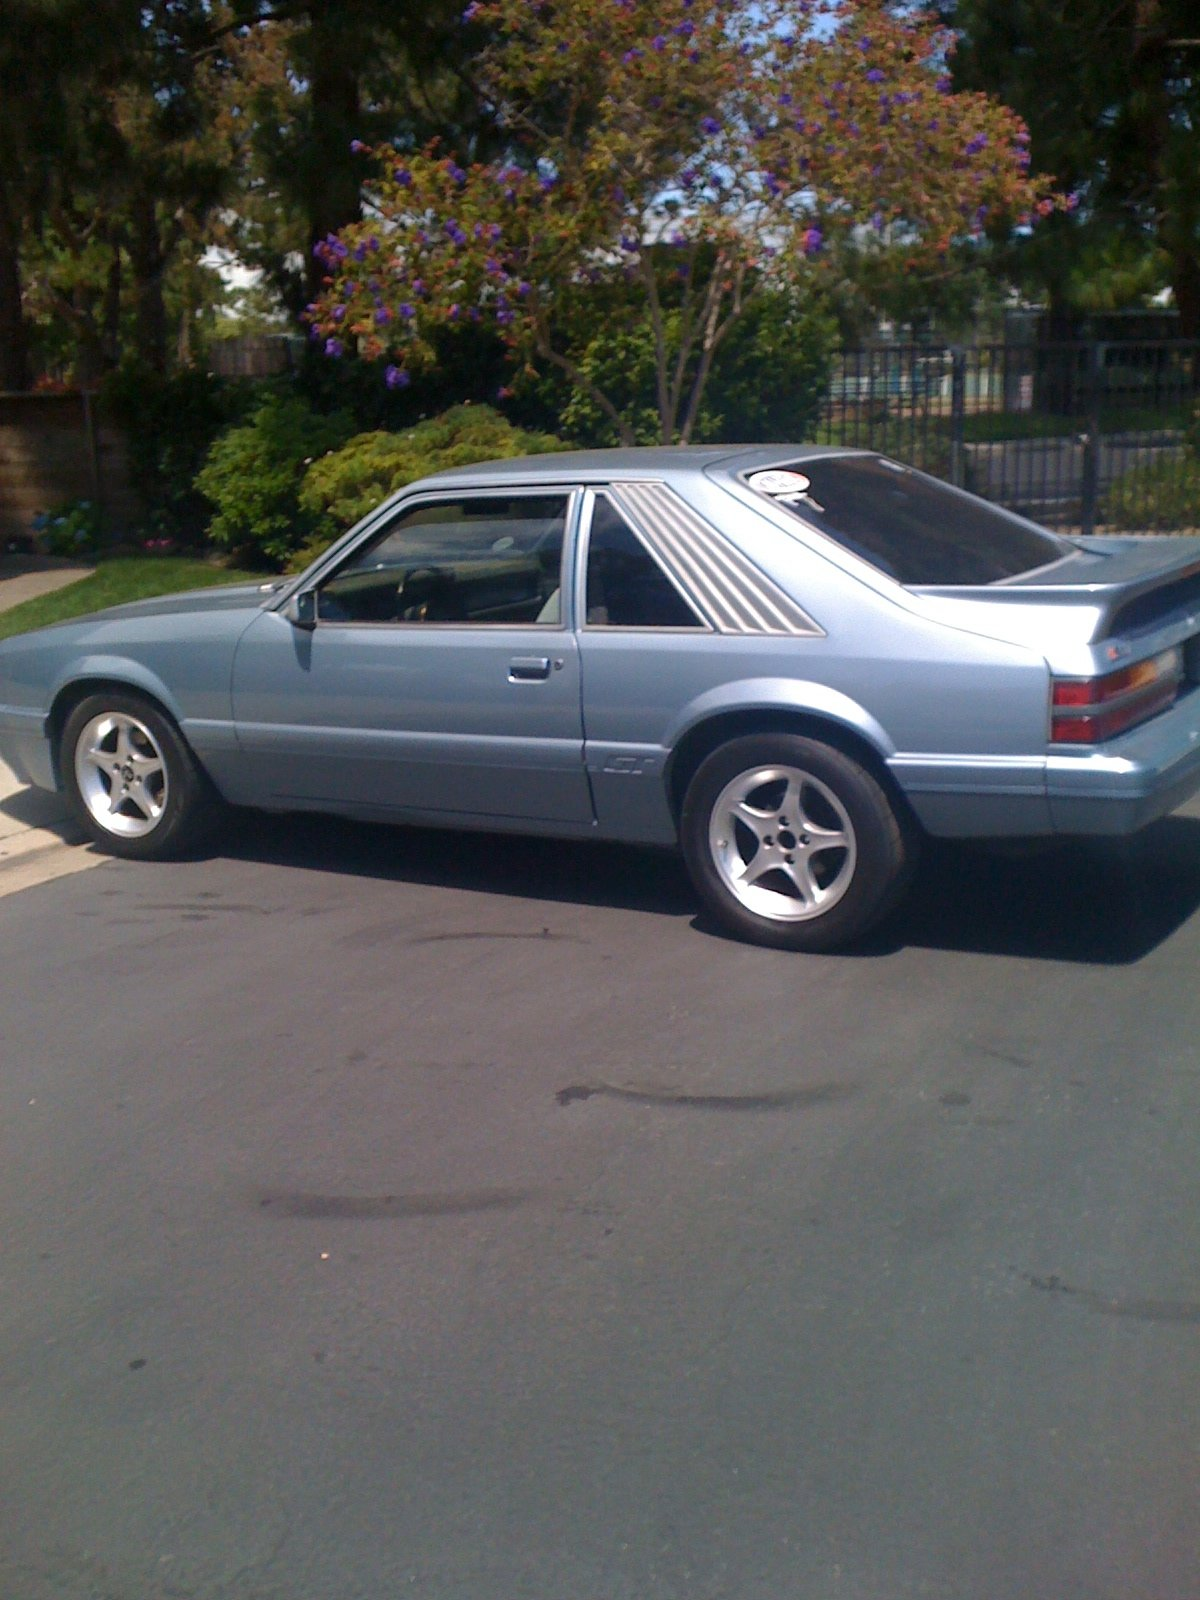 1986 Mustang GT for sale (Bay Area)-img_0261.jpg